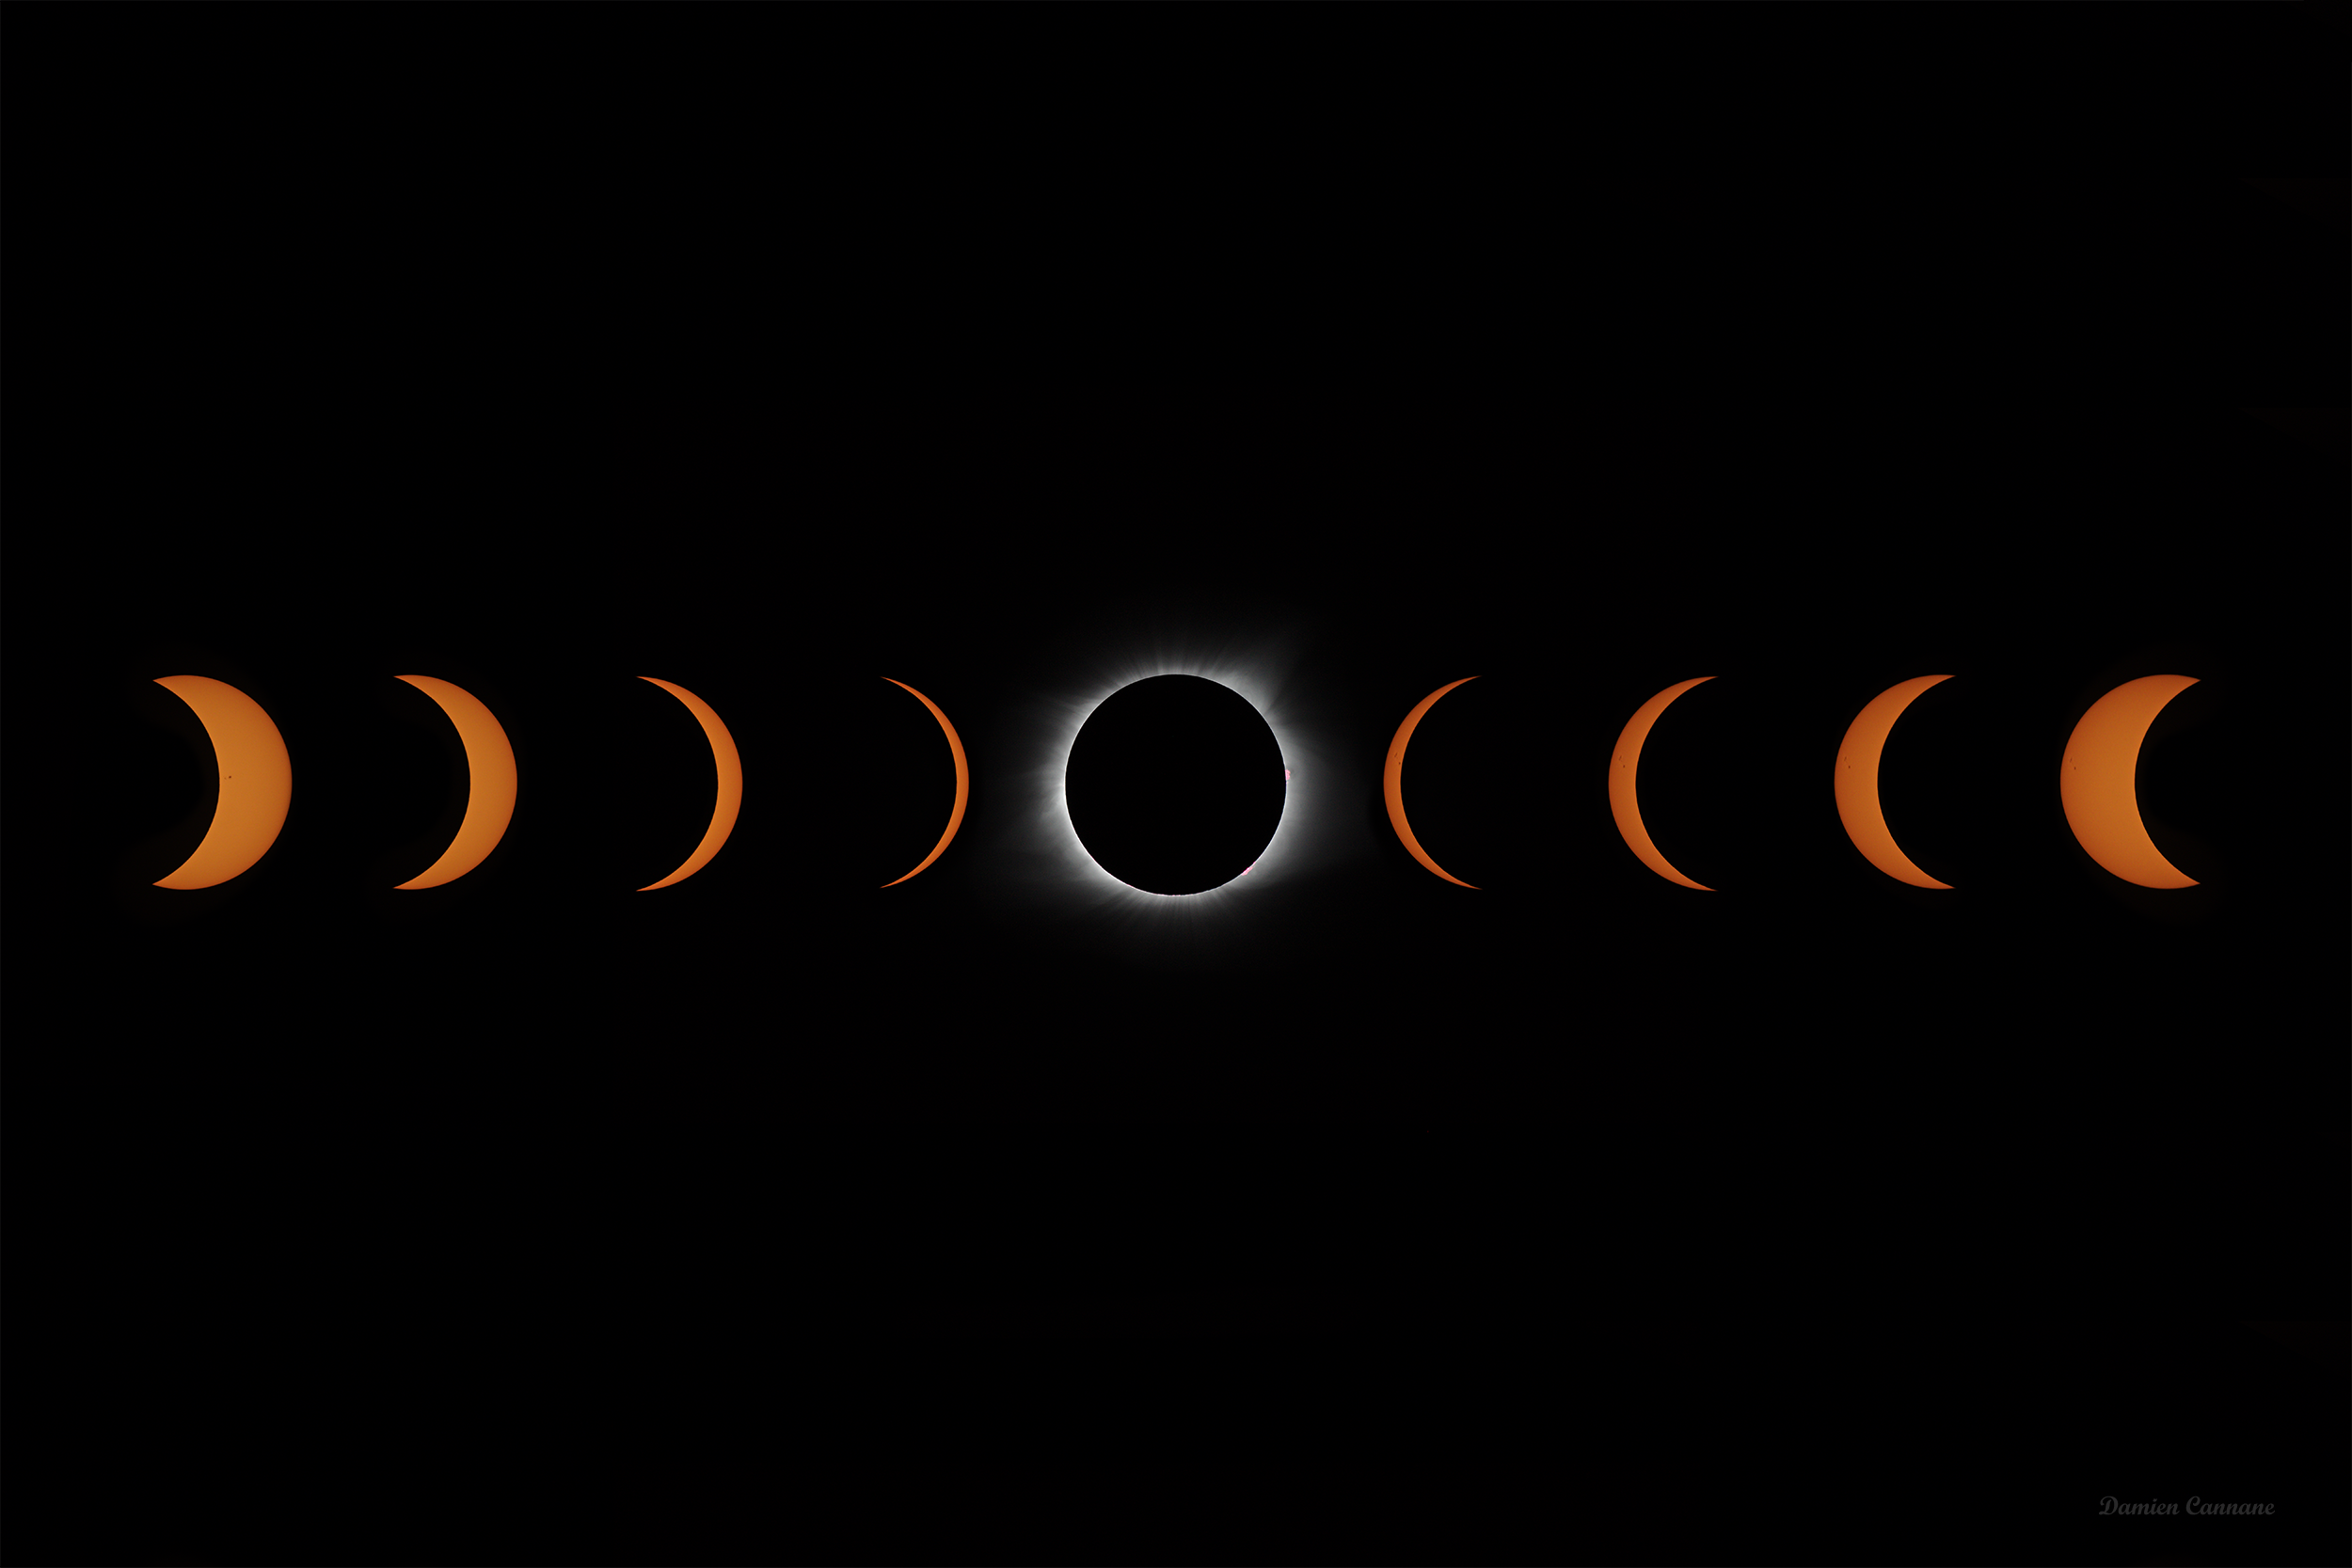 Eclipse Progression 18 x 12, 16 x 24 Social Media.png